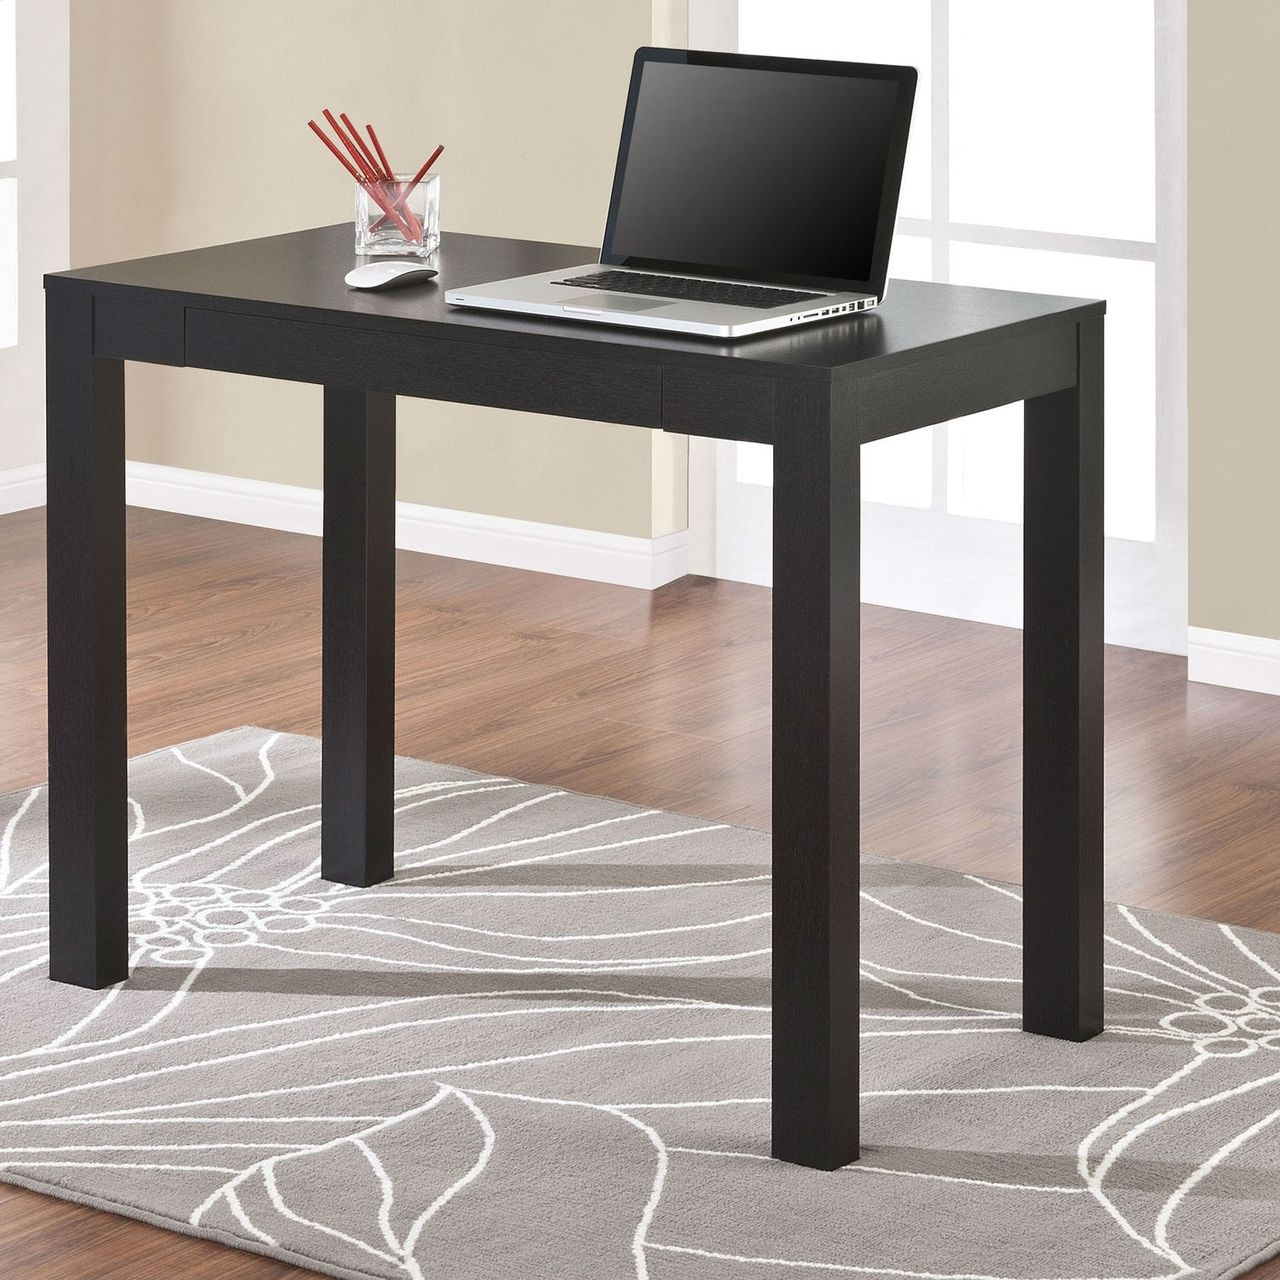 Compact Home Office Dorm Laptop Computer Desk Writing Table In  # Table Ordi En Bois